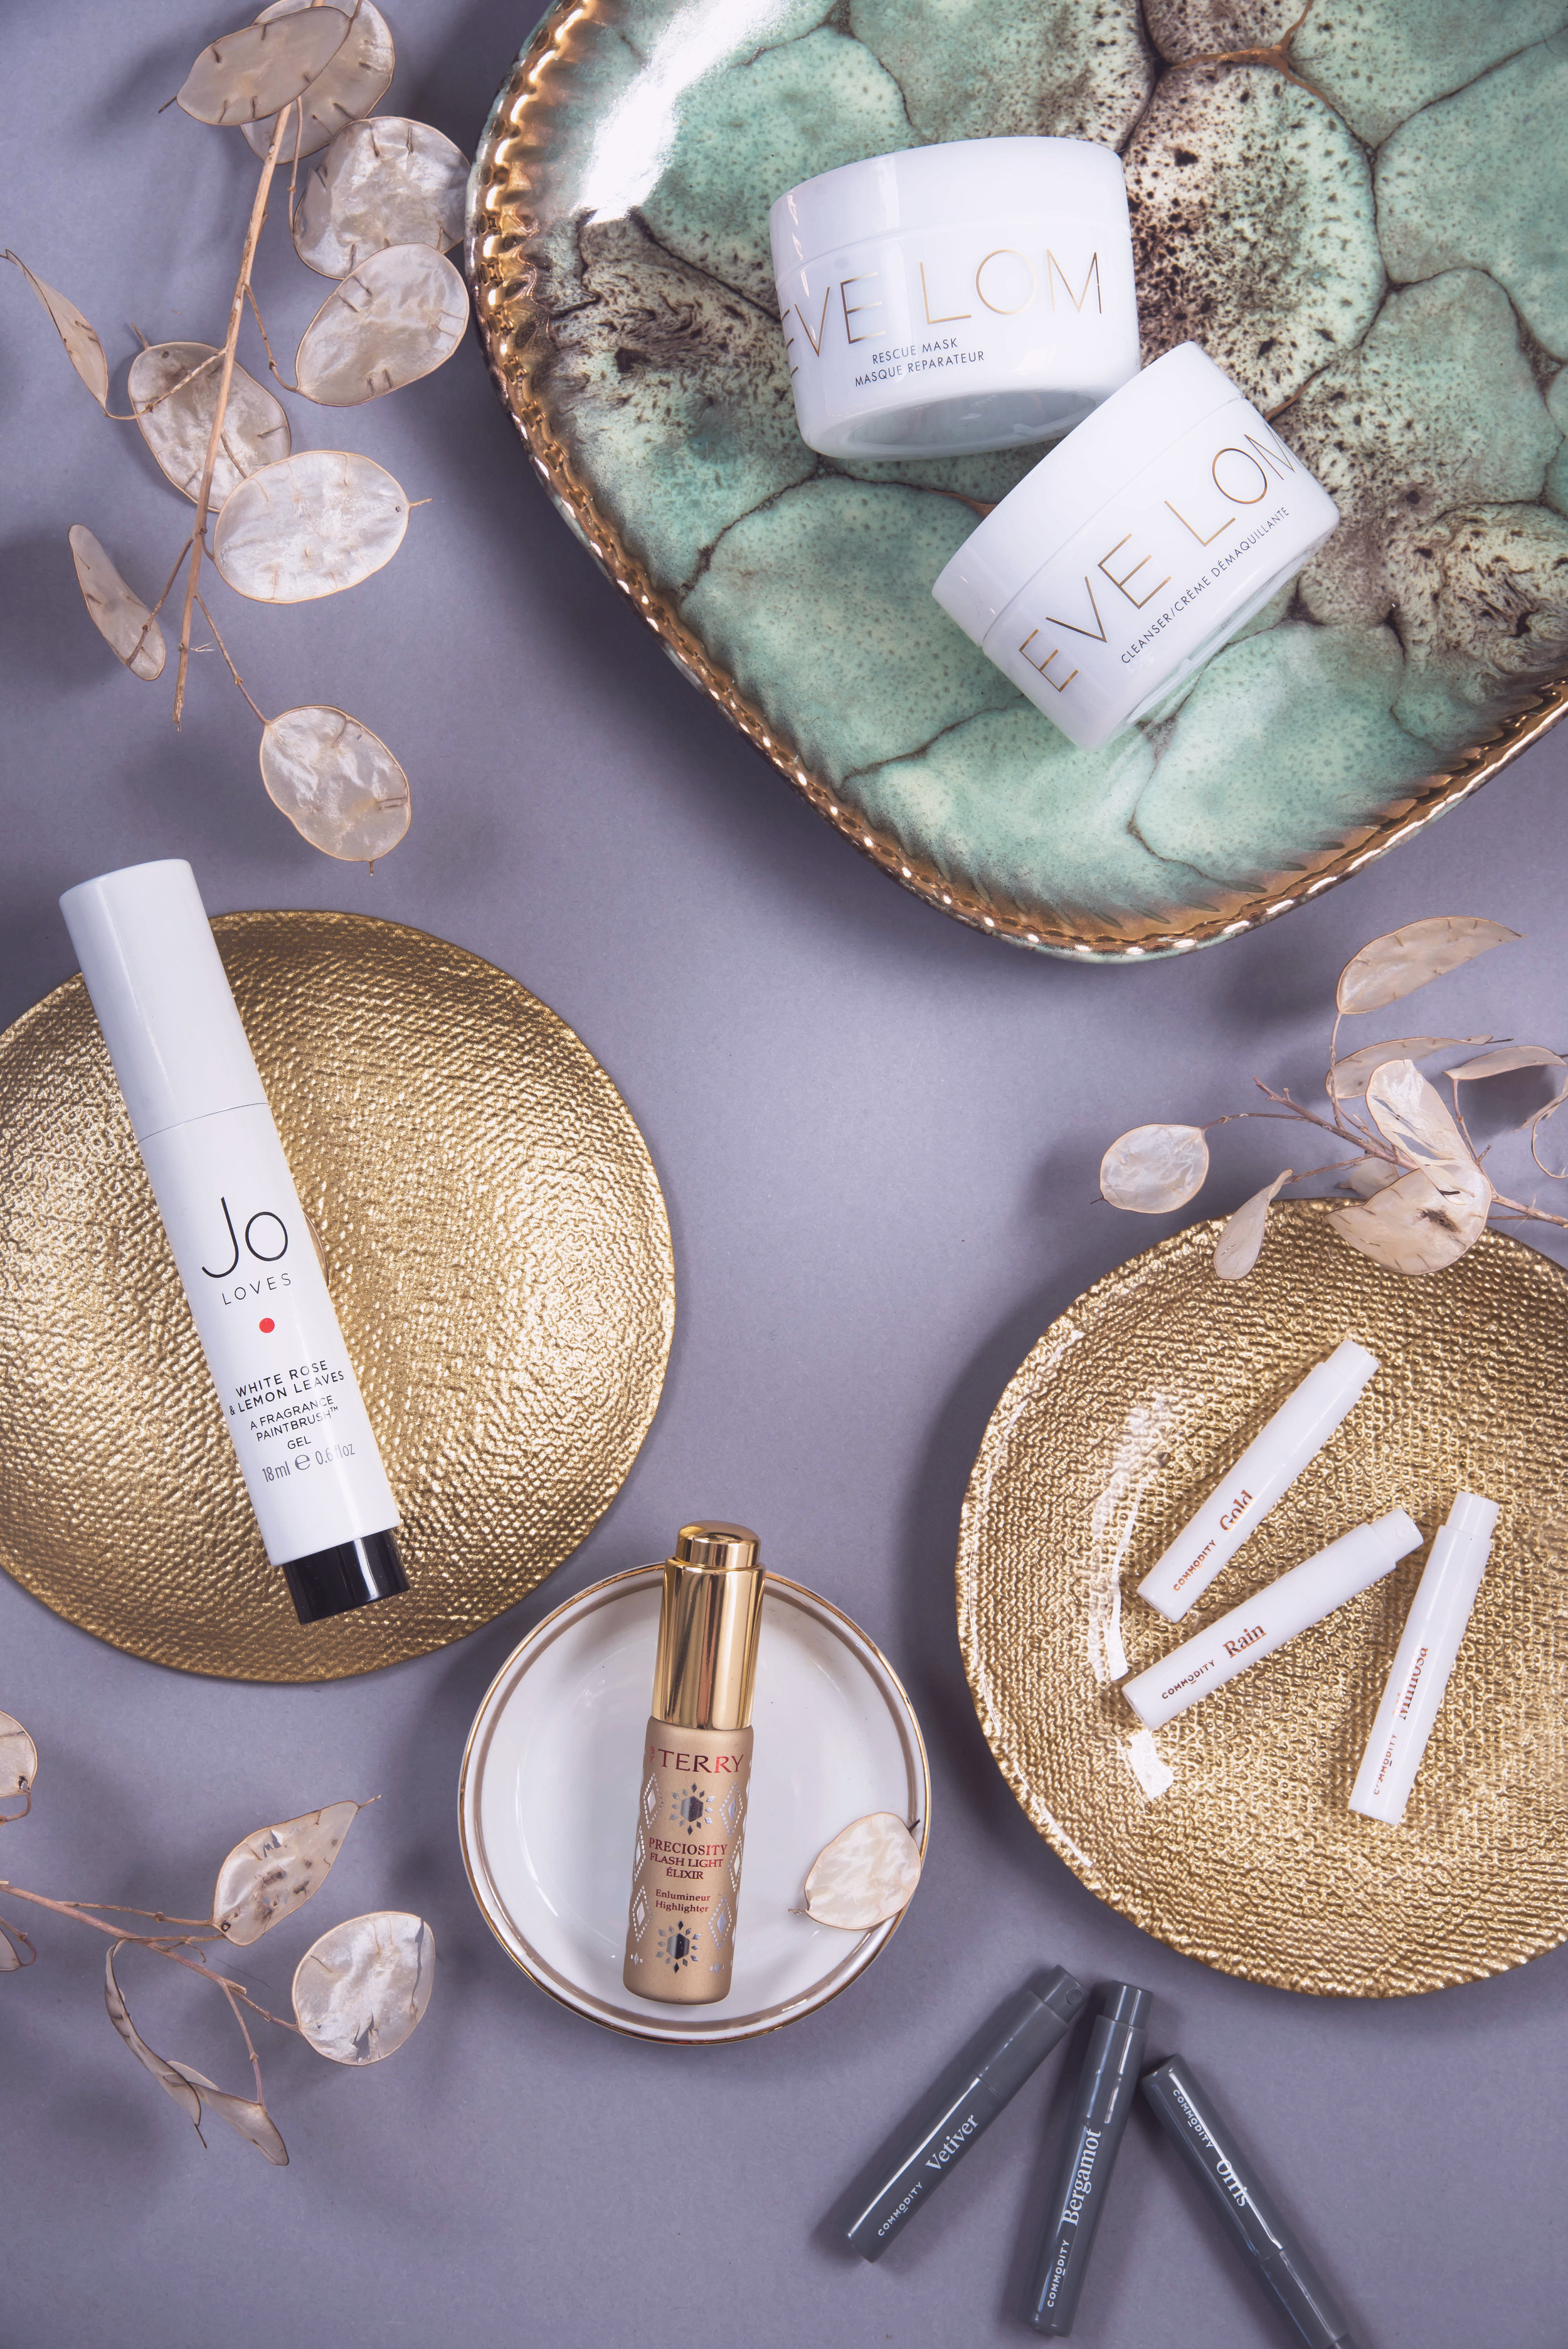 For the Sophisticated Beauty Lover - Makeup and Skincare to Delight